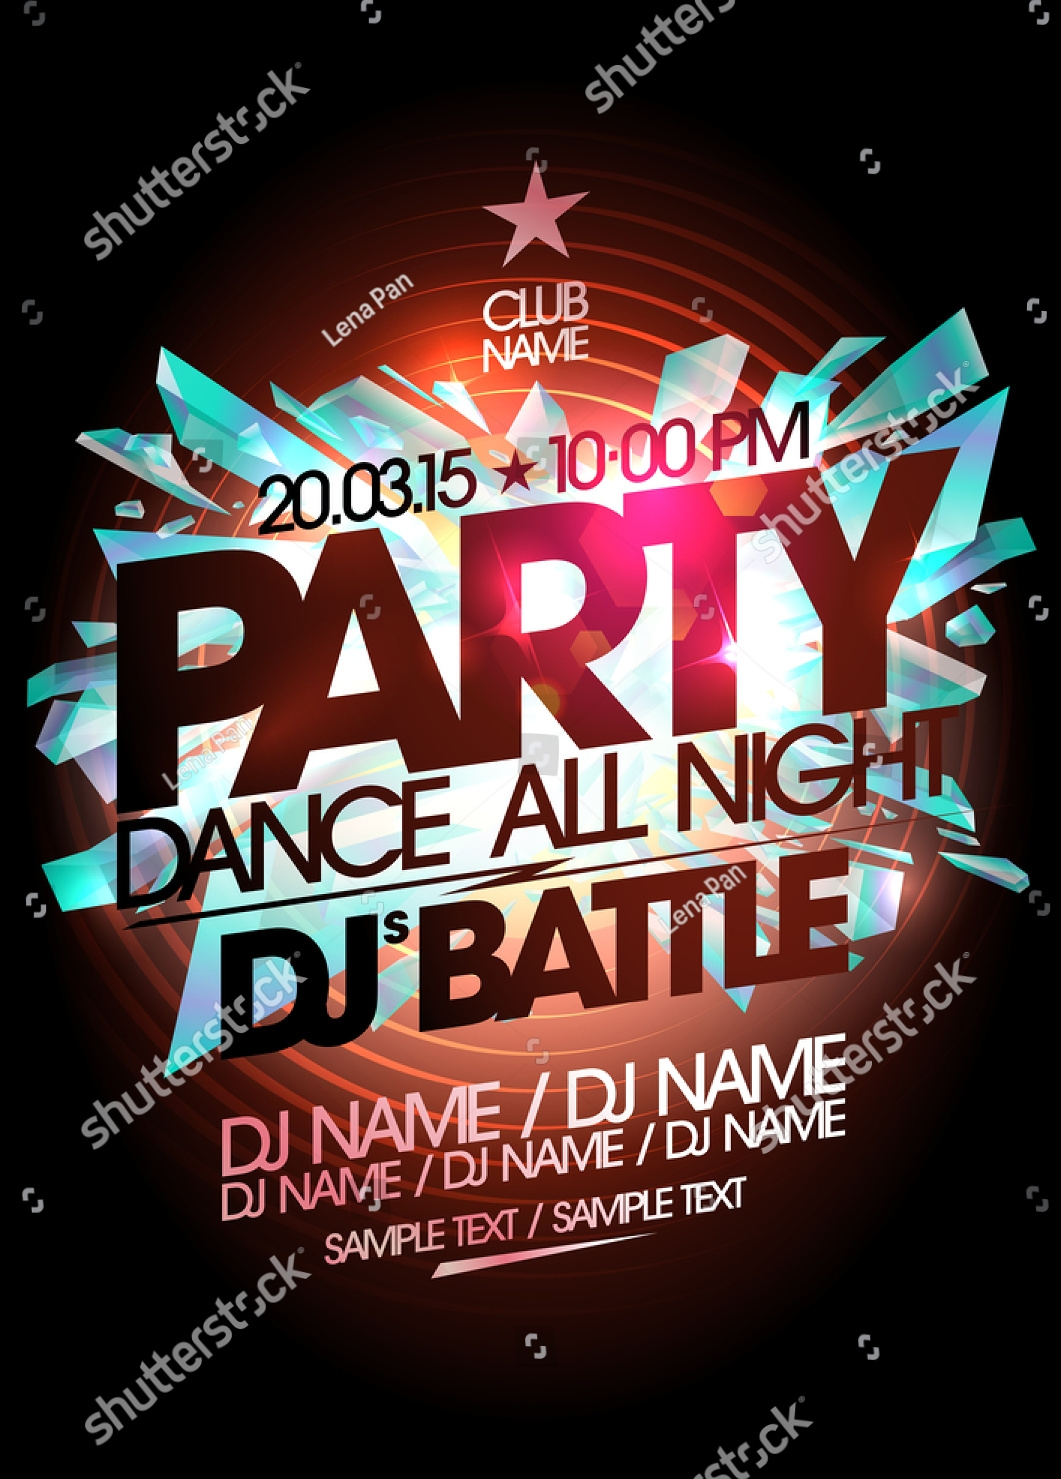 15+ Dance Party Invitation Designs and Examples - PSD, AI